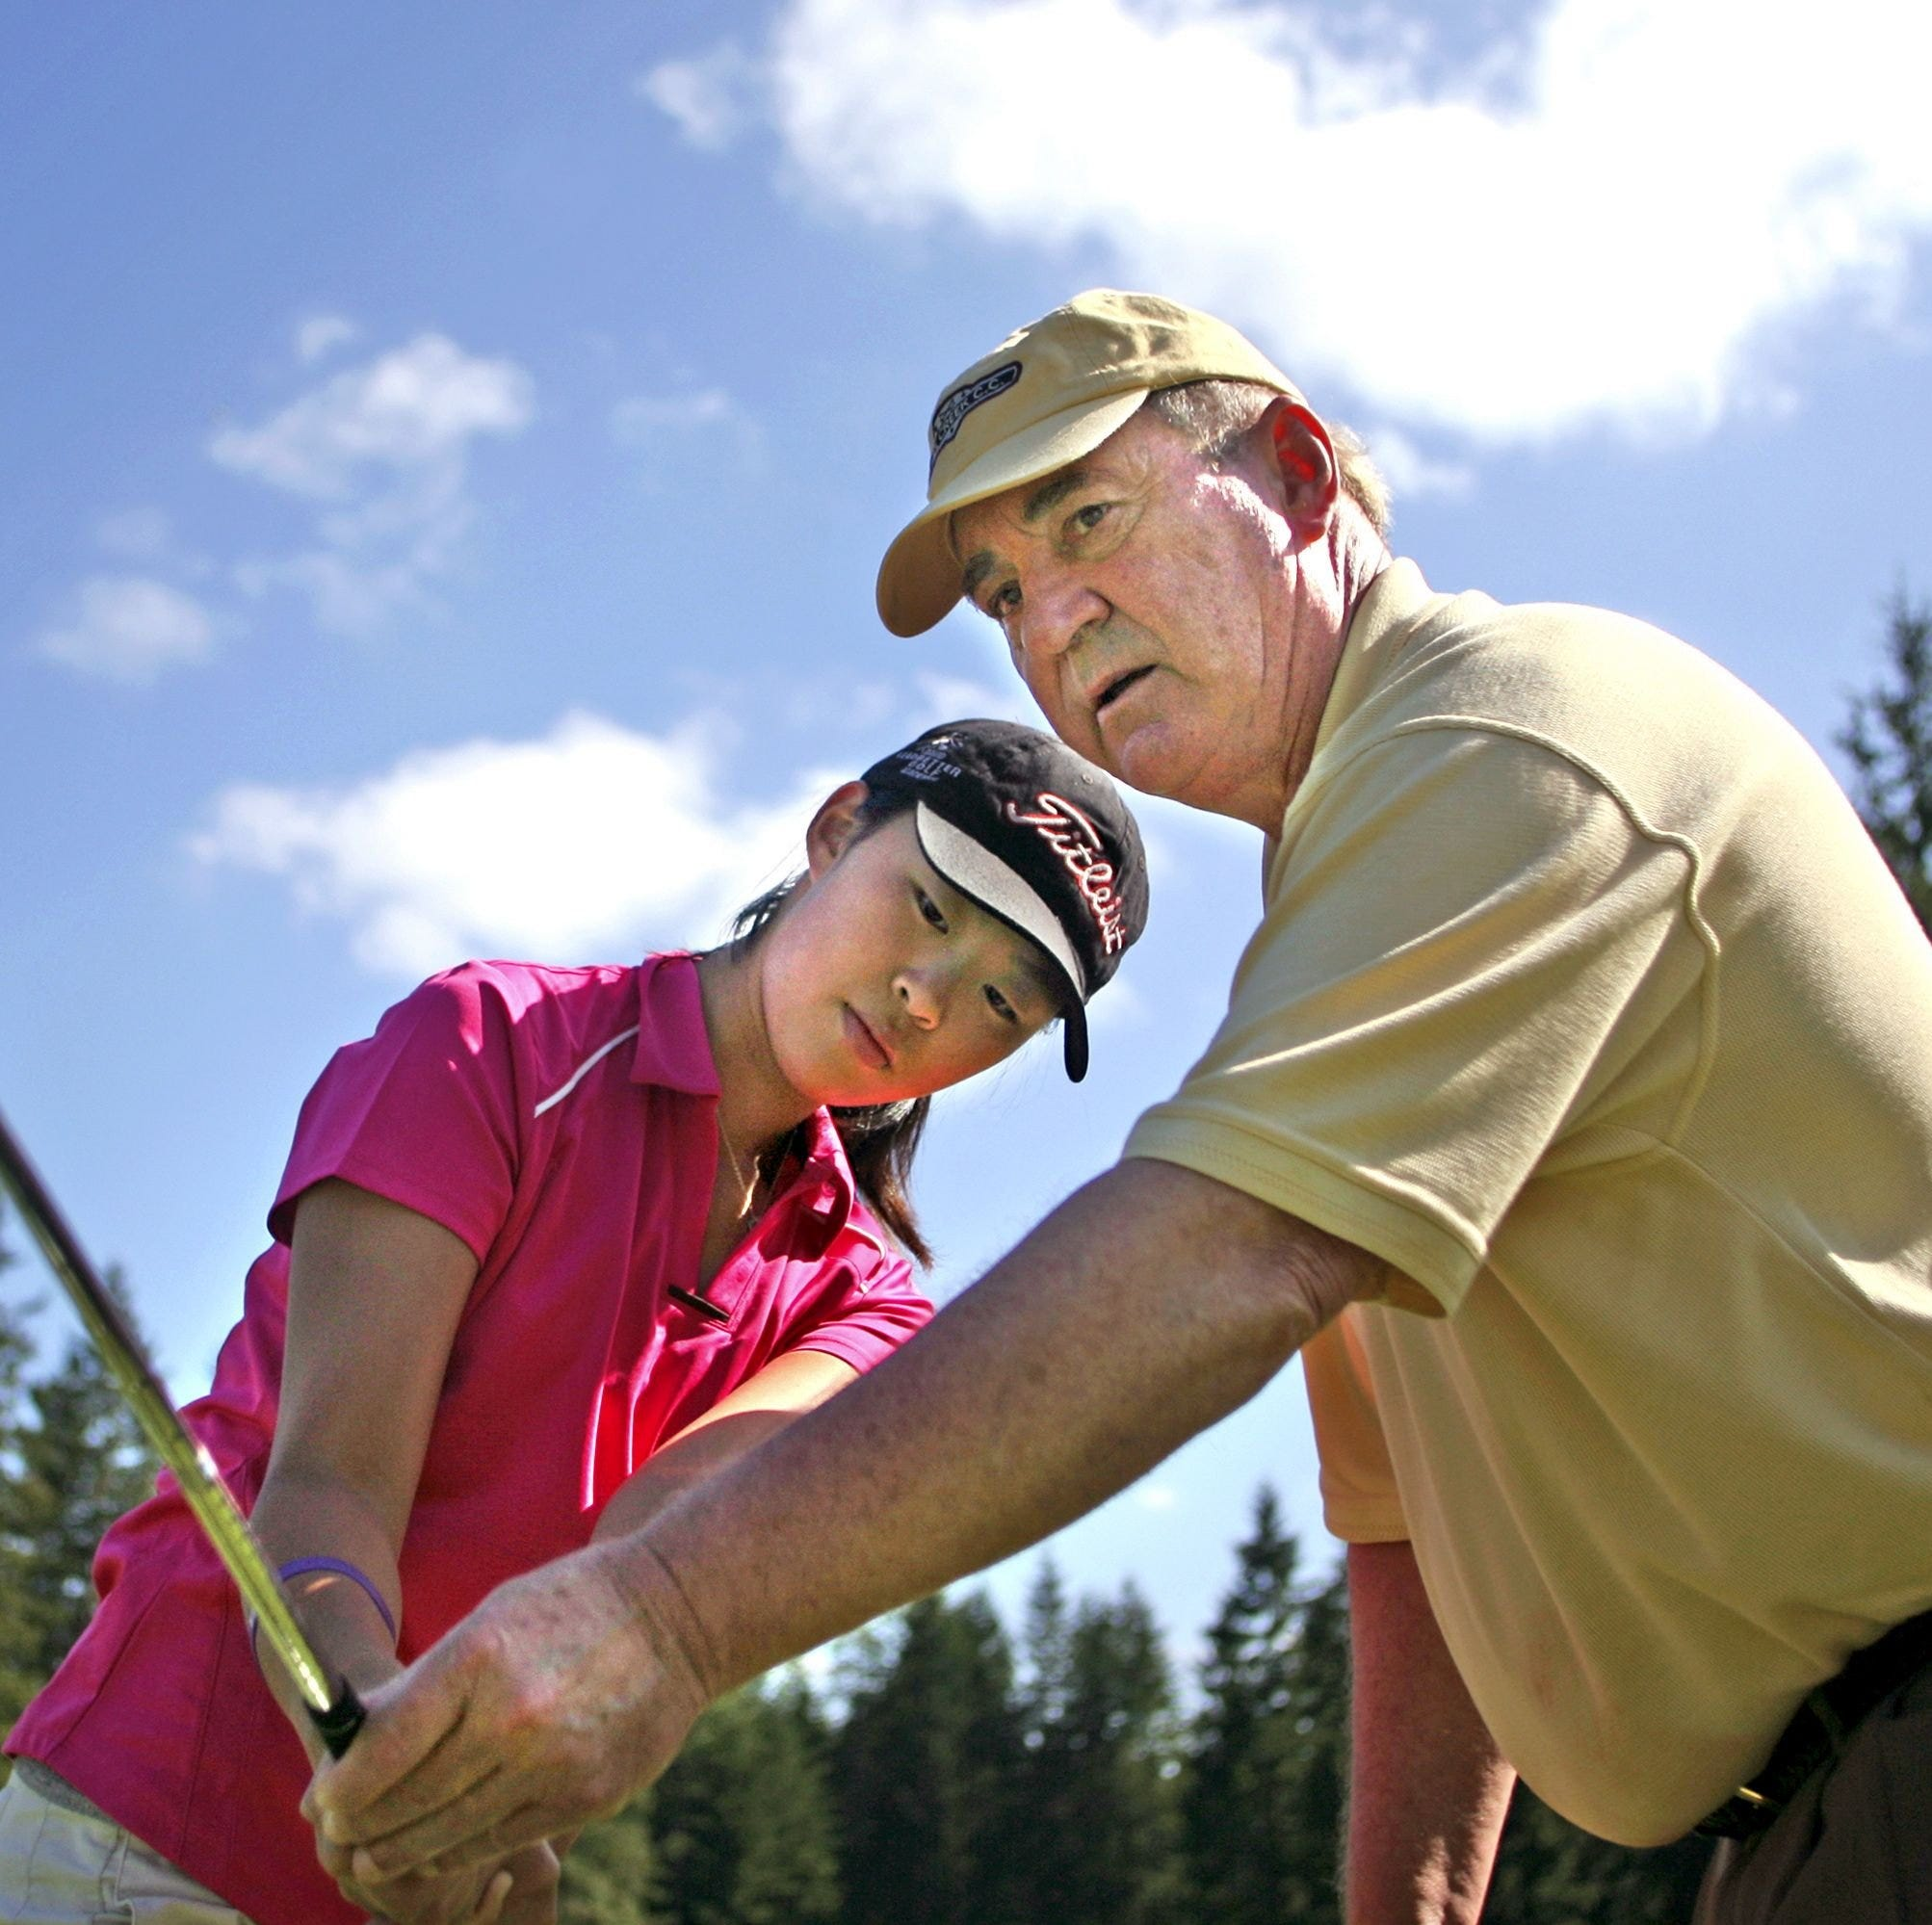 Kitsap's swing doctor will finally get a chance to play golf